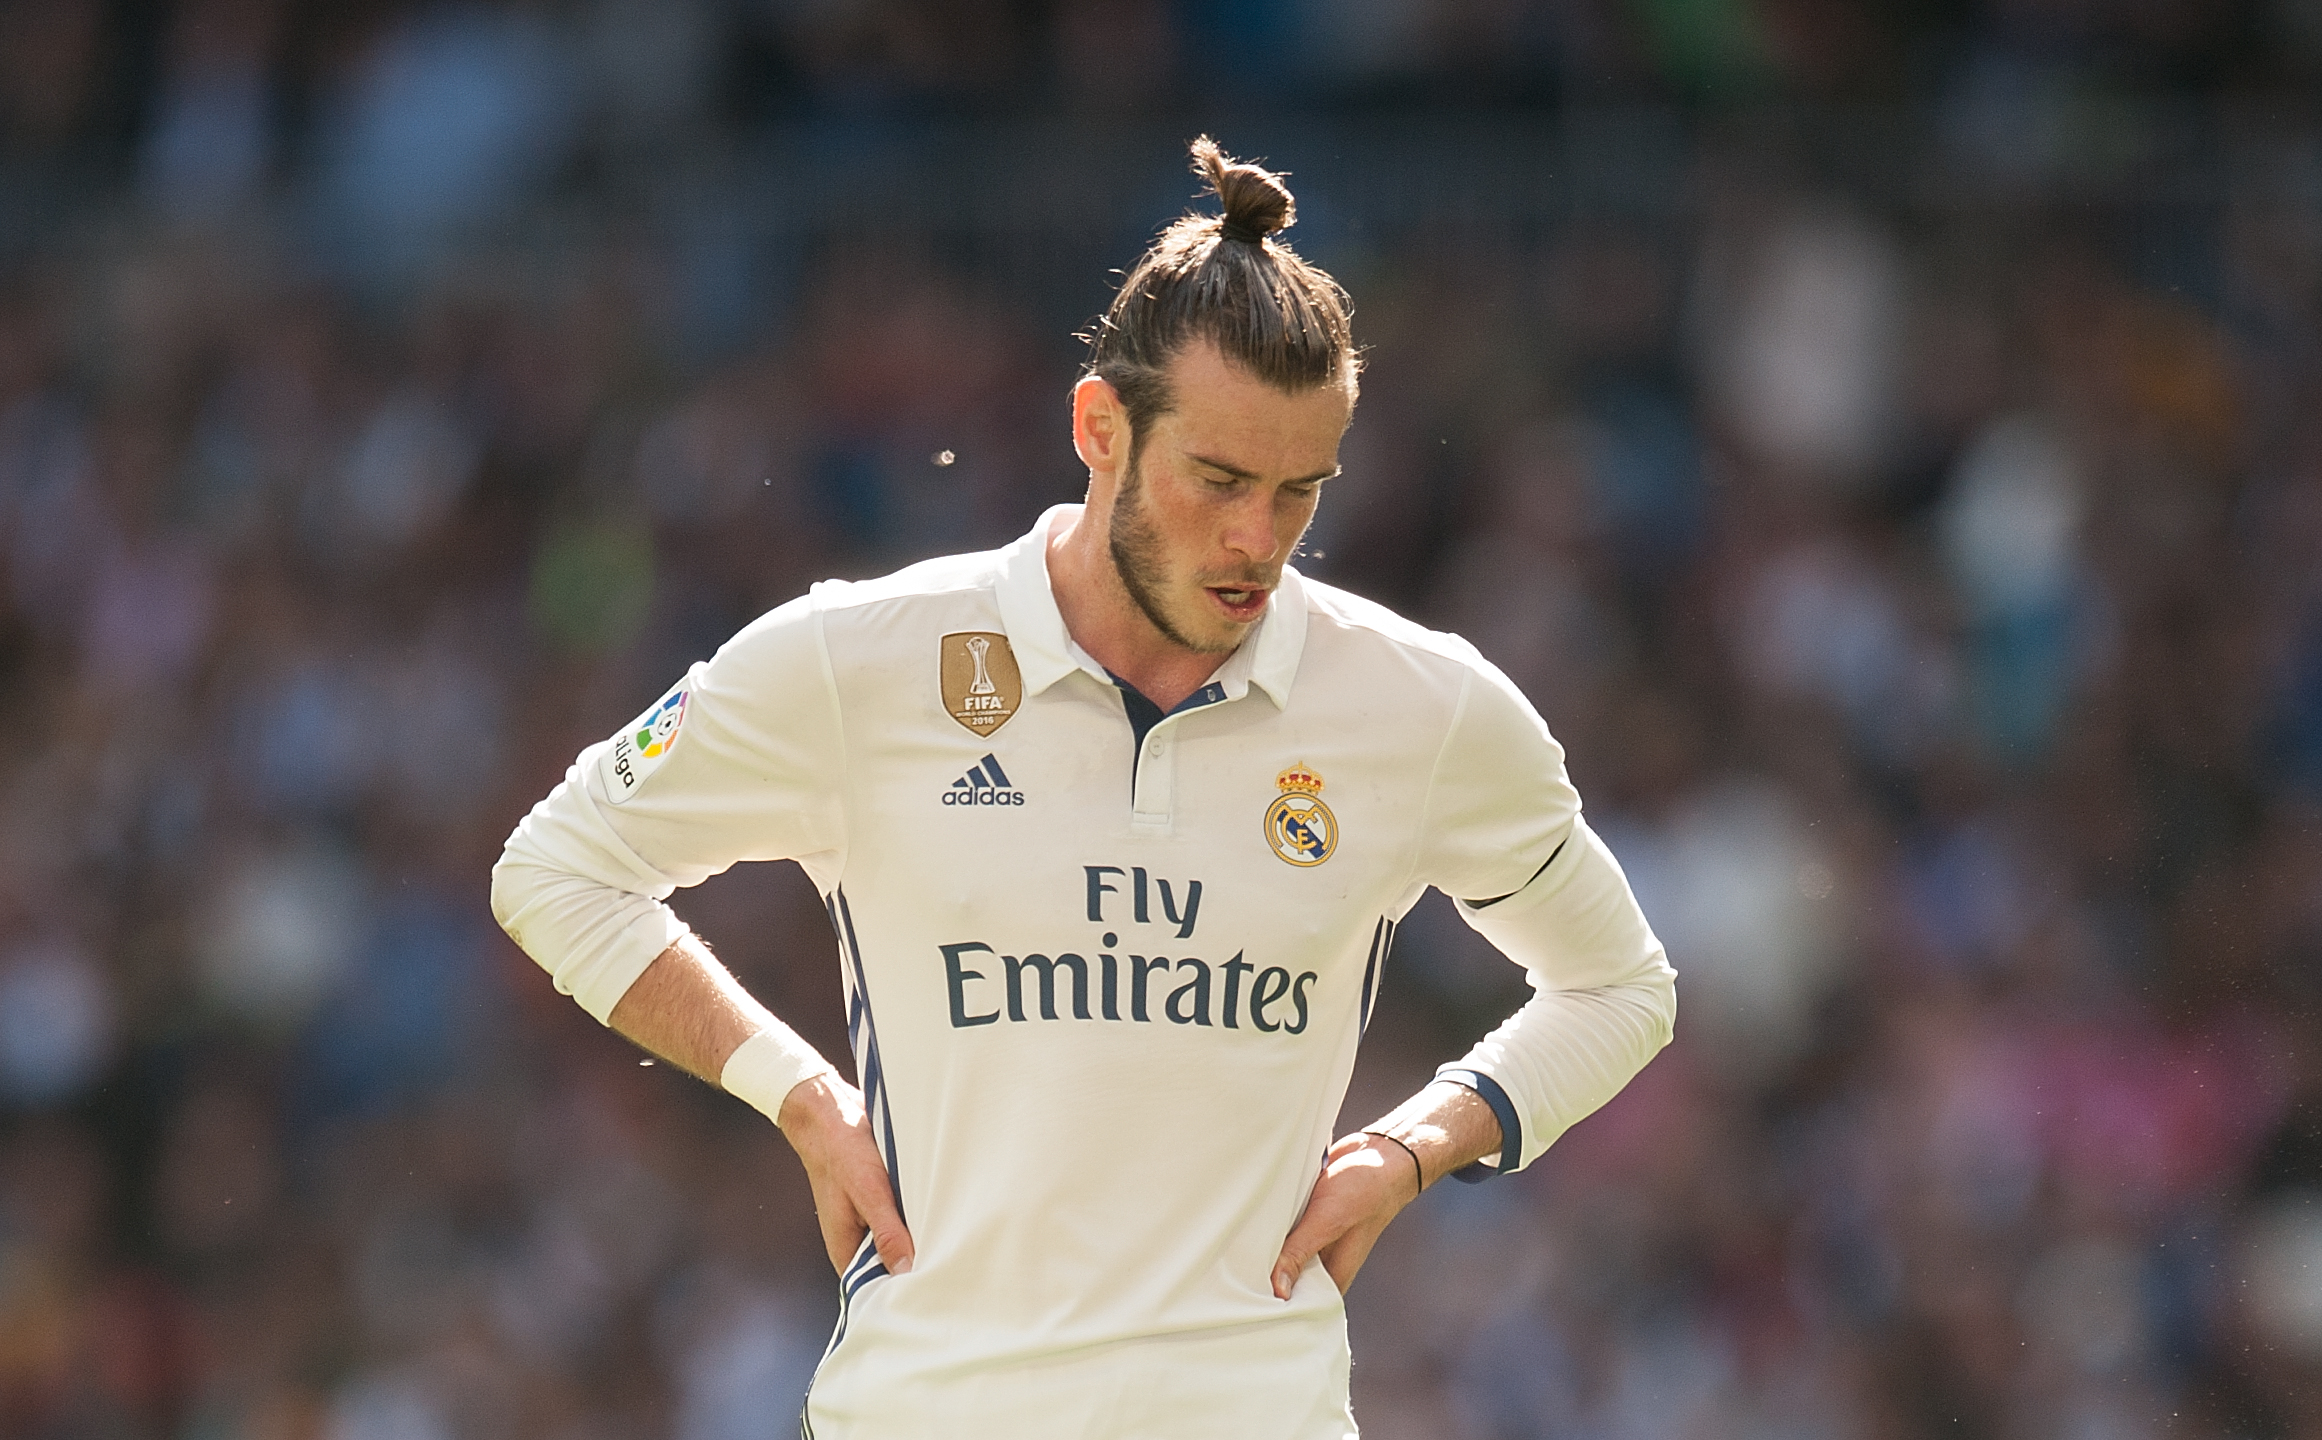 gareth bale, gareth bale injury, where is bale, is bale playing today, Gareth Bale status vs falcons, when will bale come back, Gareth Bale el clasico